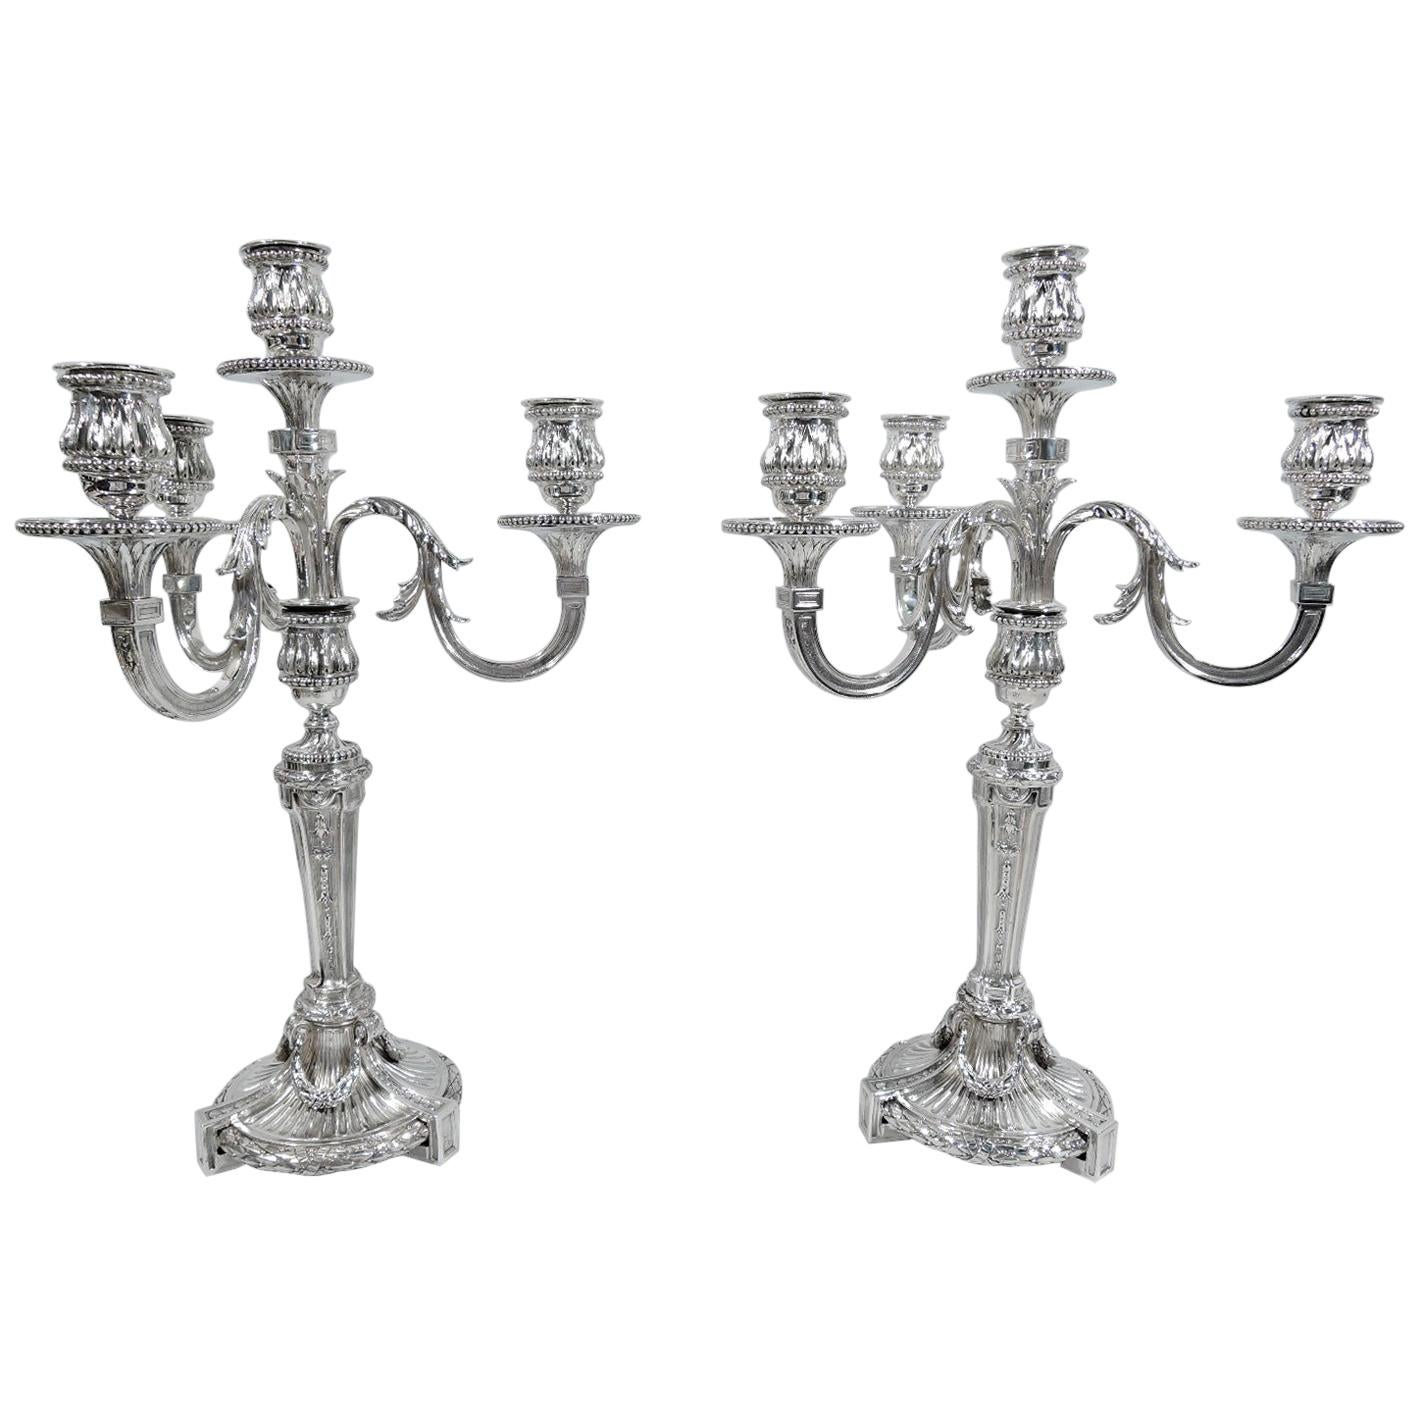 Pair of Antique Odiot French Neoclassical Silver 4-Light Candelabra